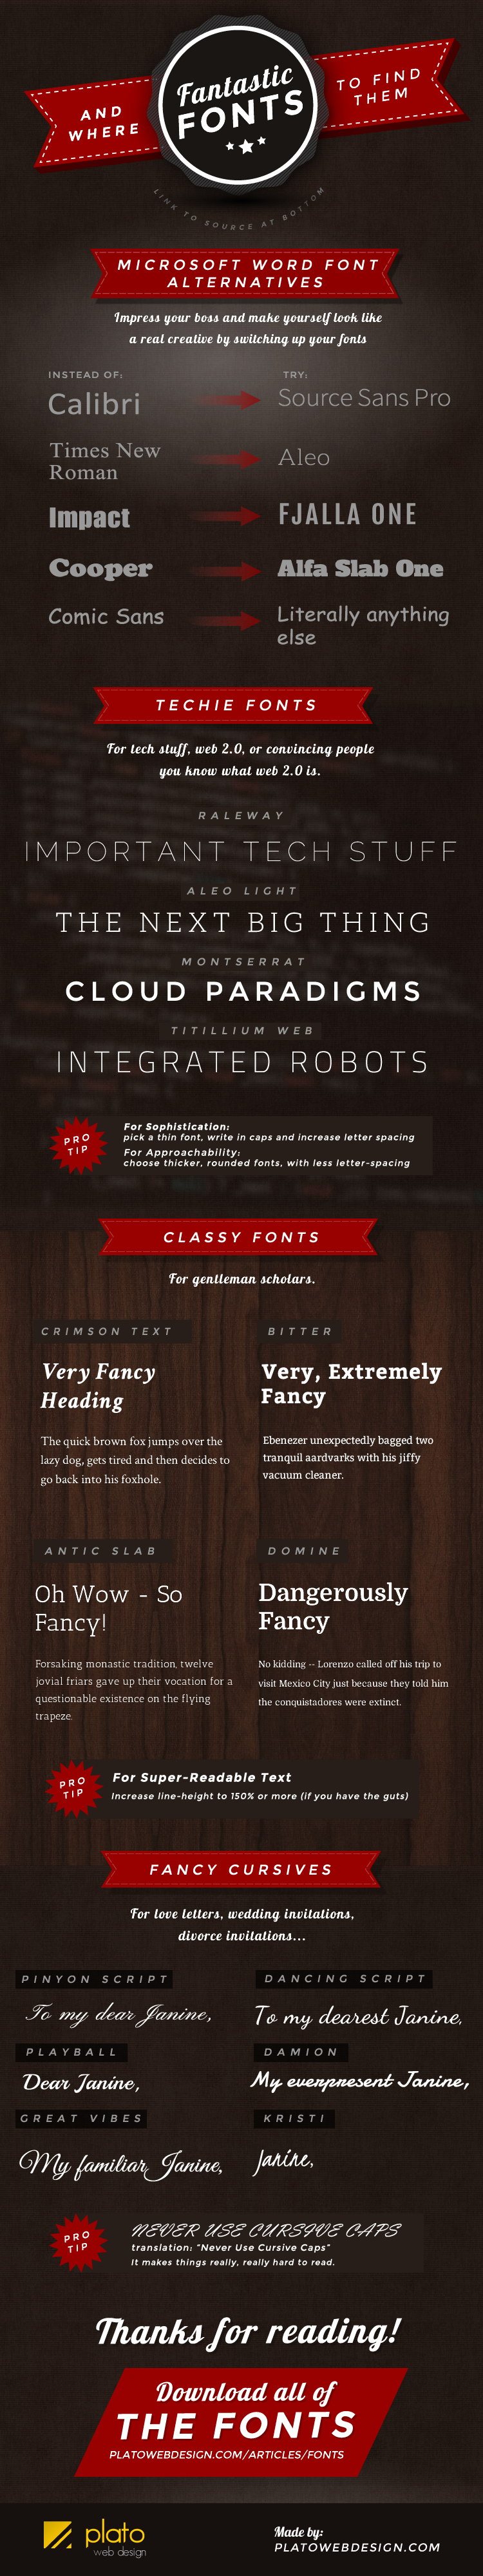 Having Trouble Reading The Infographic? Click On The Image To Make It  Larger!  Best Fonts For Resumes